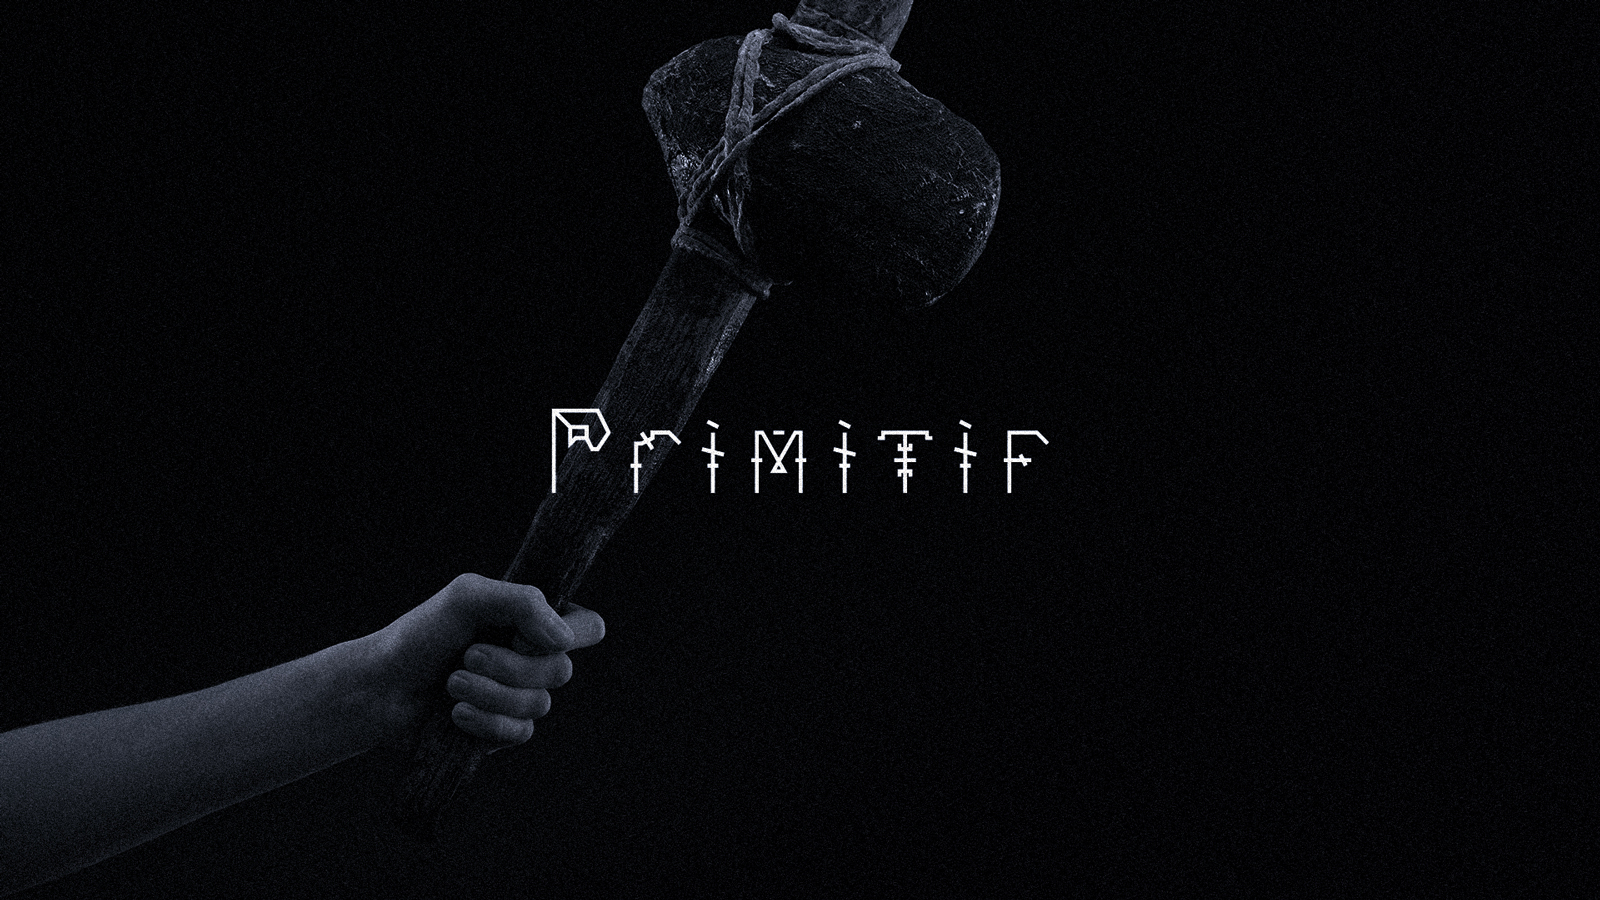 Reklam Merkezi Creates The Primitif Restaurant Branding